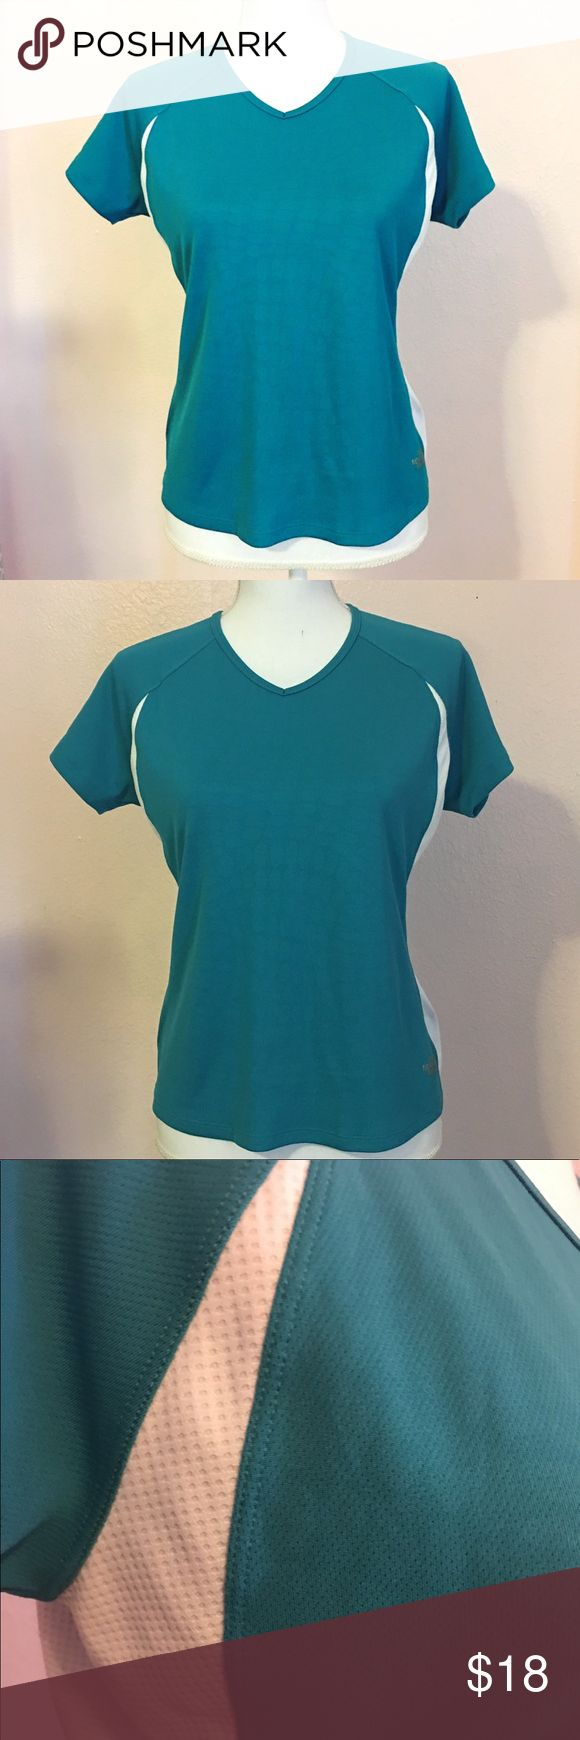 THE NORTH FACE Flight Series Teal Shirt •In excellent condition The North Face Tops Tees - Short Sleeve